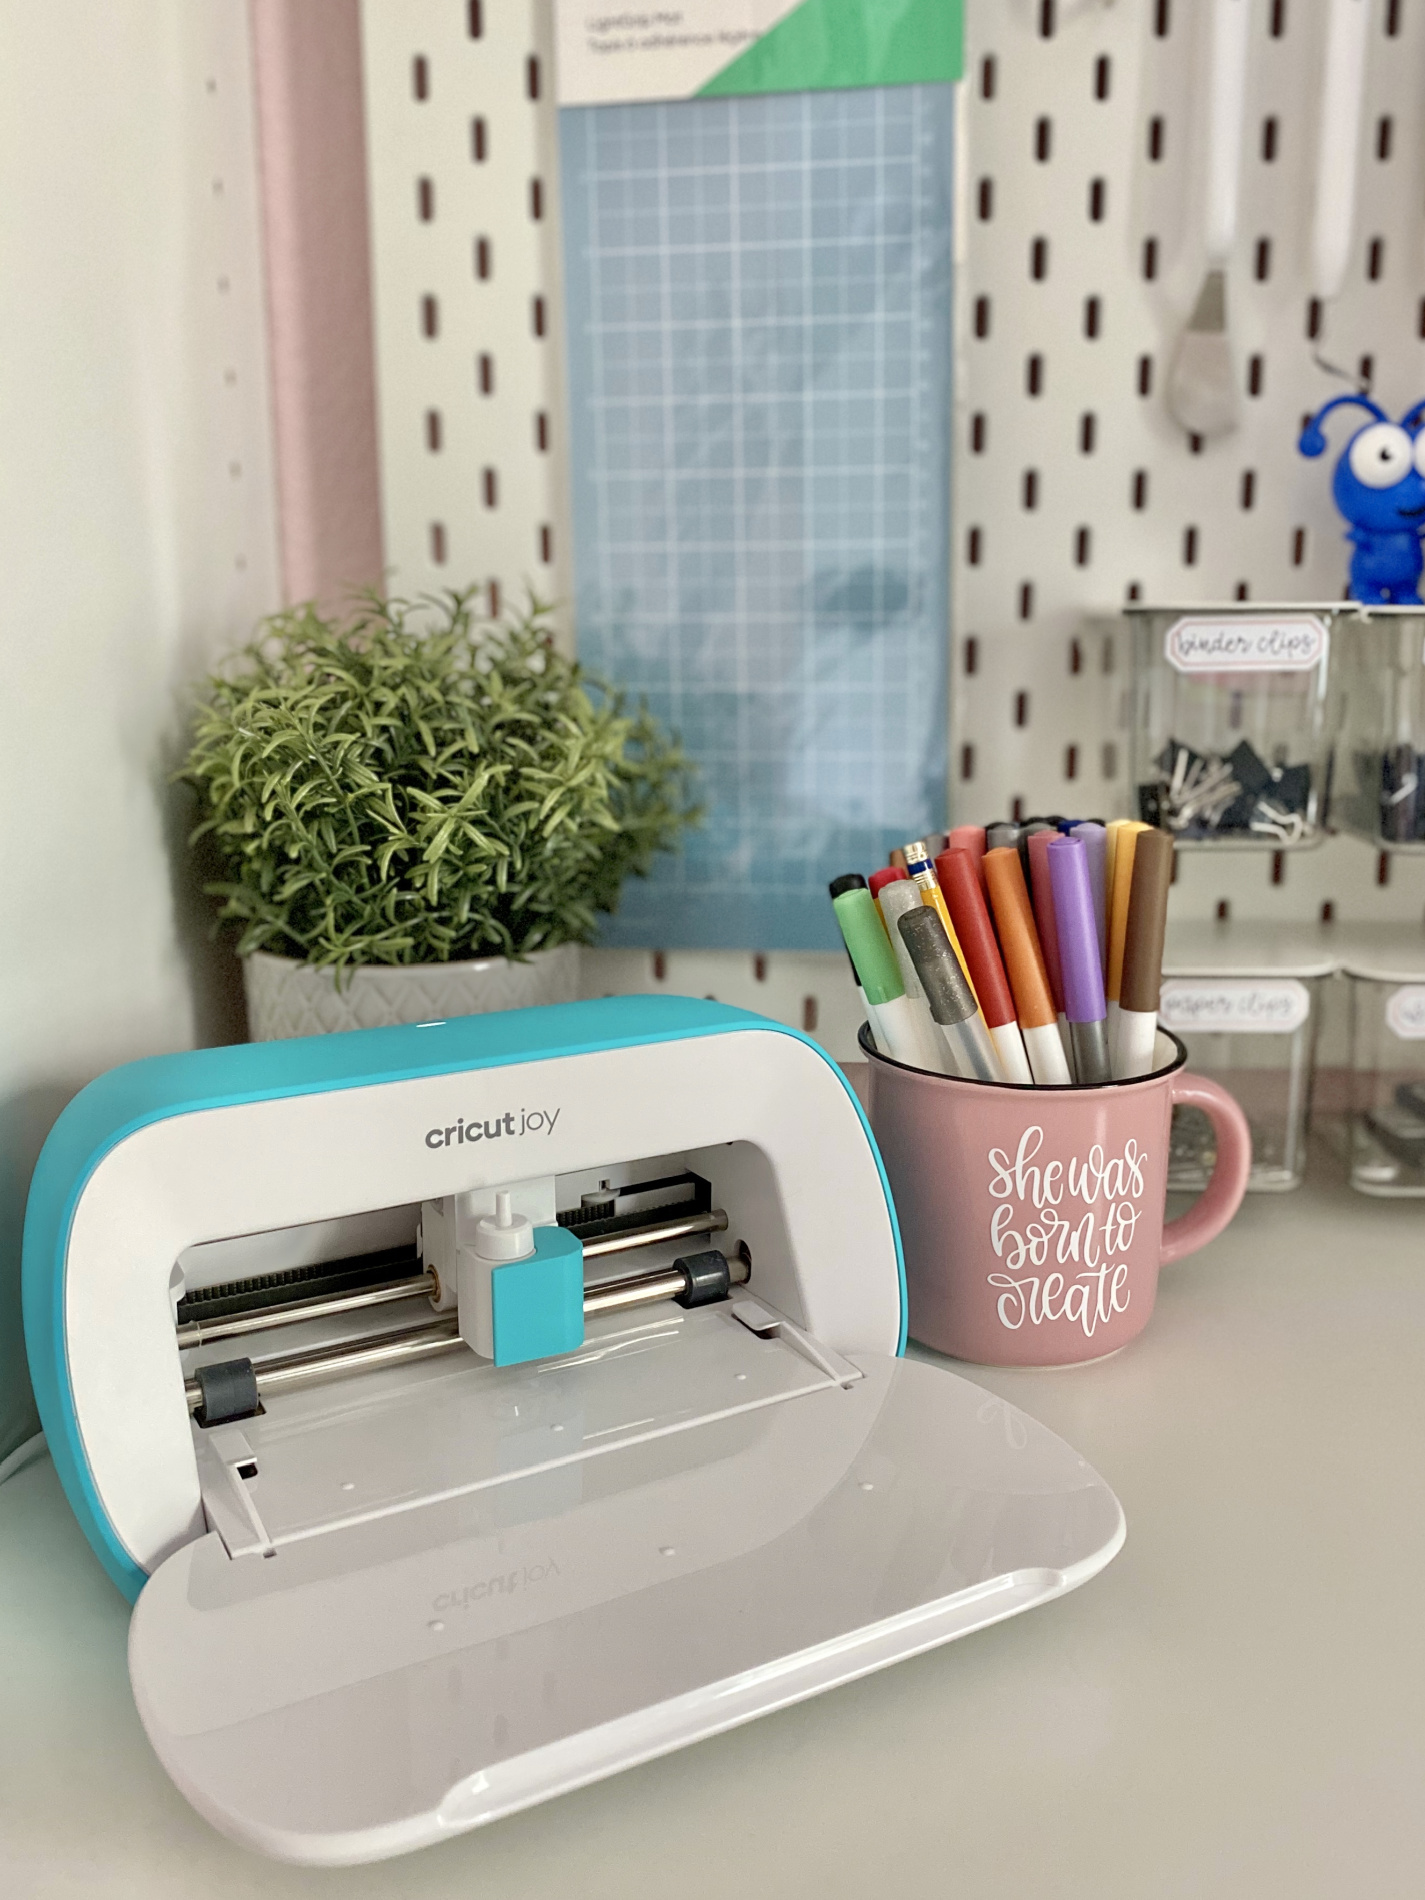 Cricut Joy with peg board in background with Cricut blue mat and pink cup.